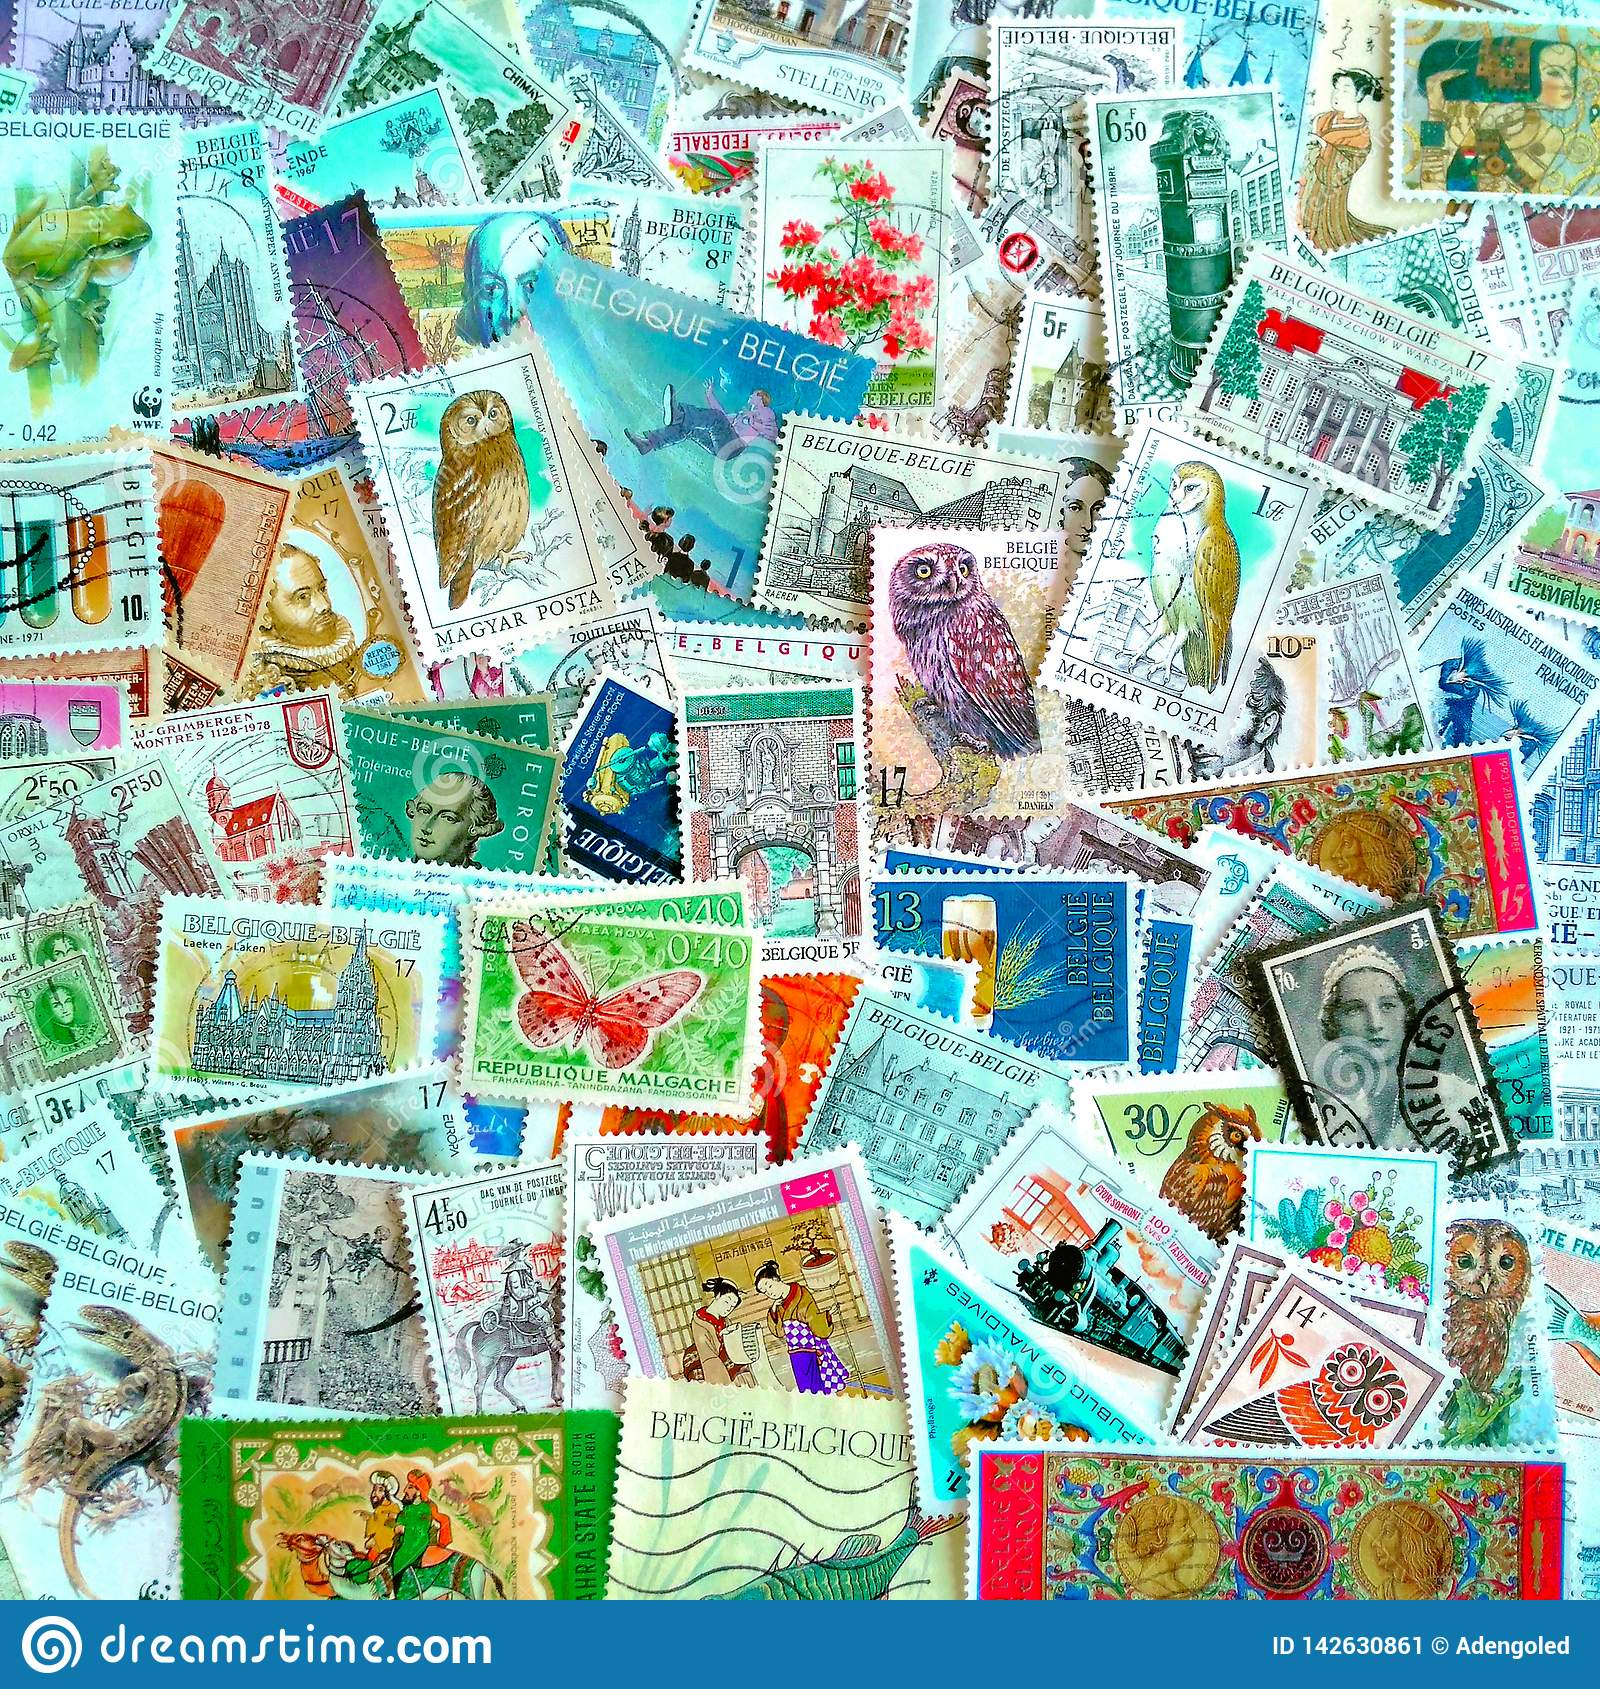 A colourful mix of mostly Belgian used postage stamps on various themes